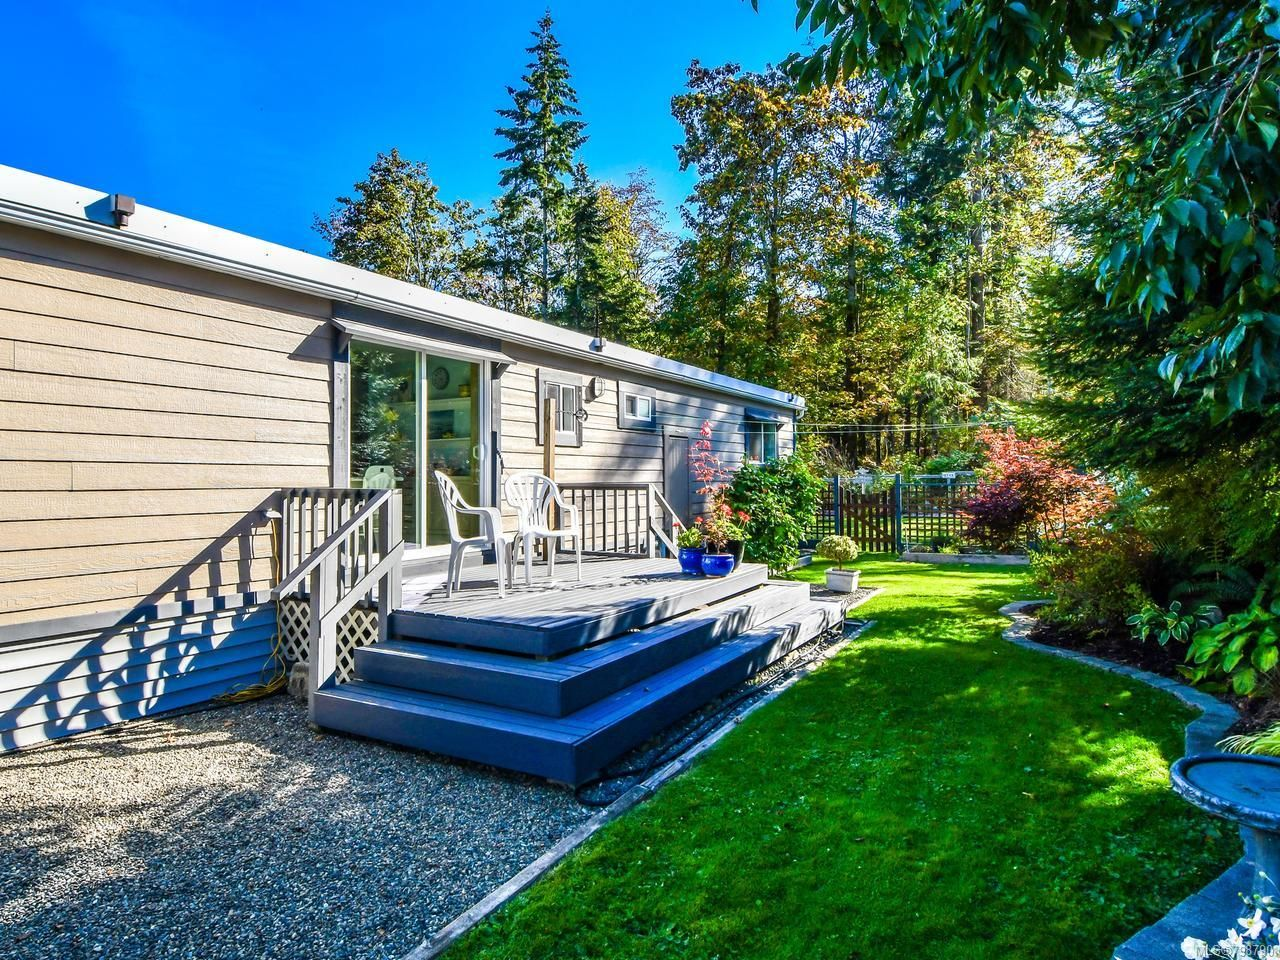 Main Photo: 189 HENRY ROAD in CAMPBELL RIVER: CR Campbell River South Manufactured Home for sale (Campbell River)  : MLS®# 798790